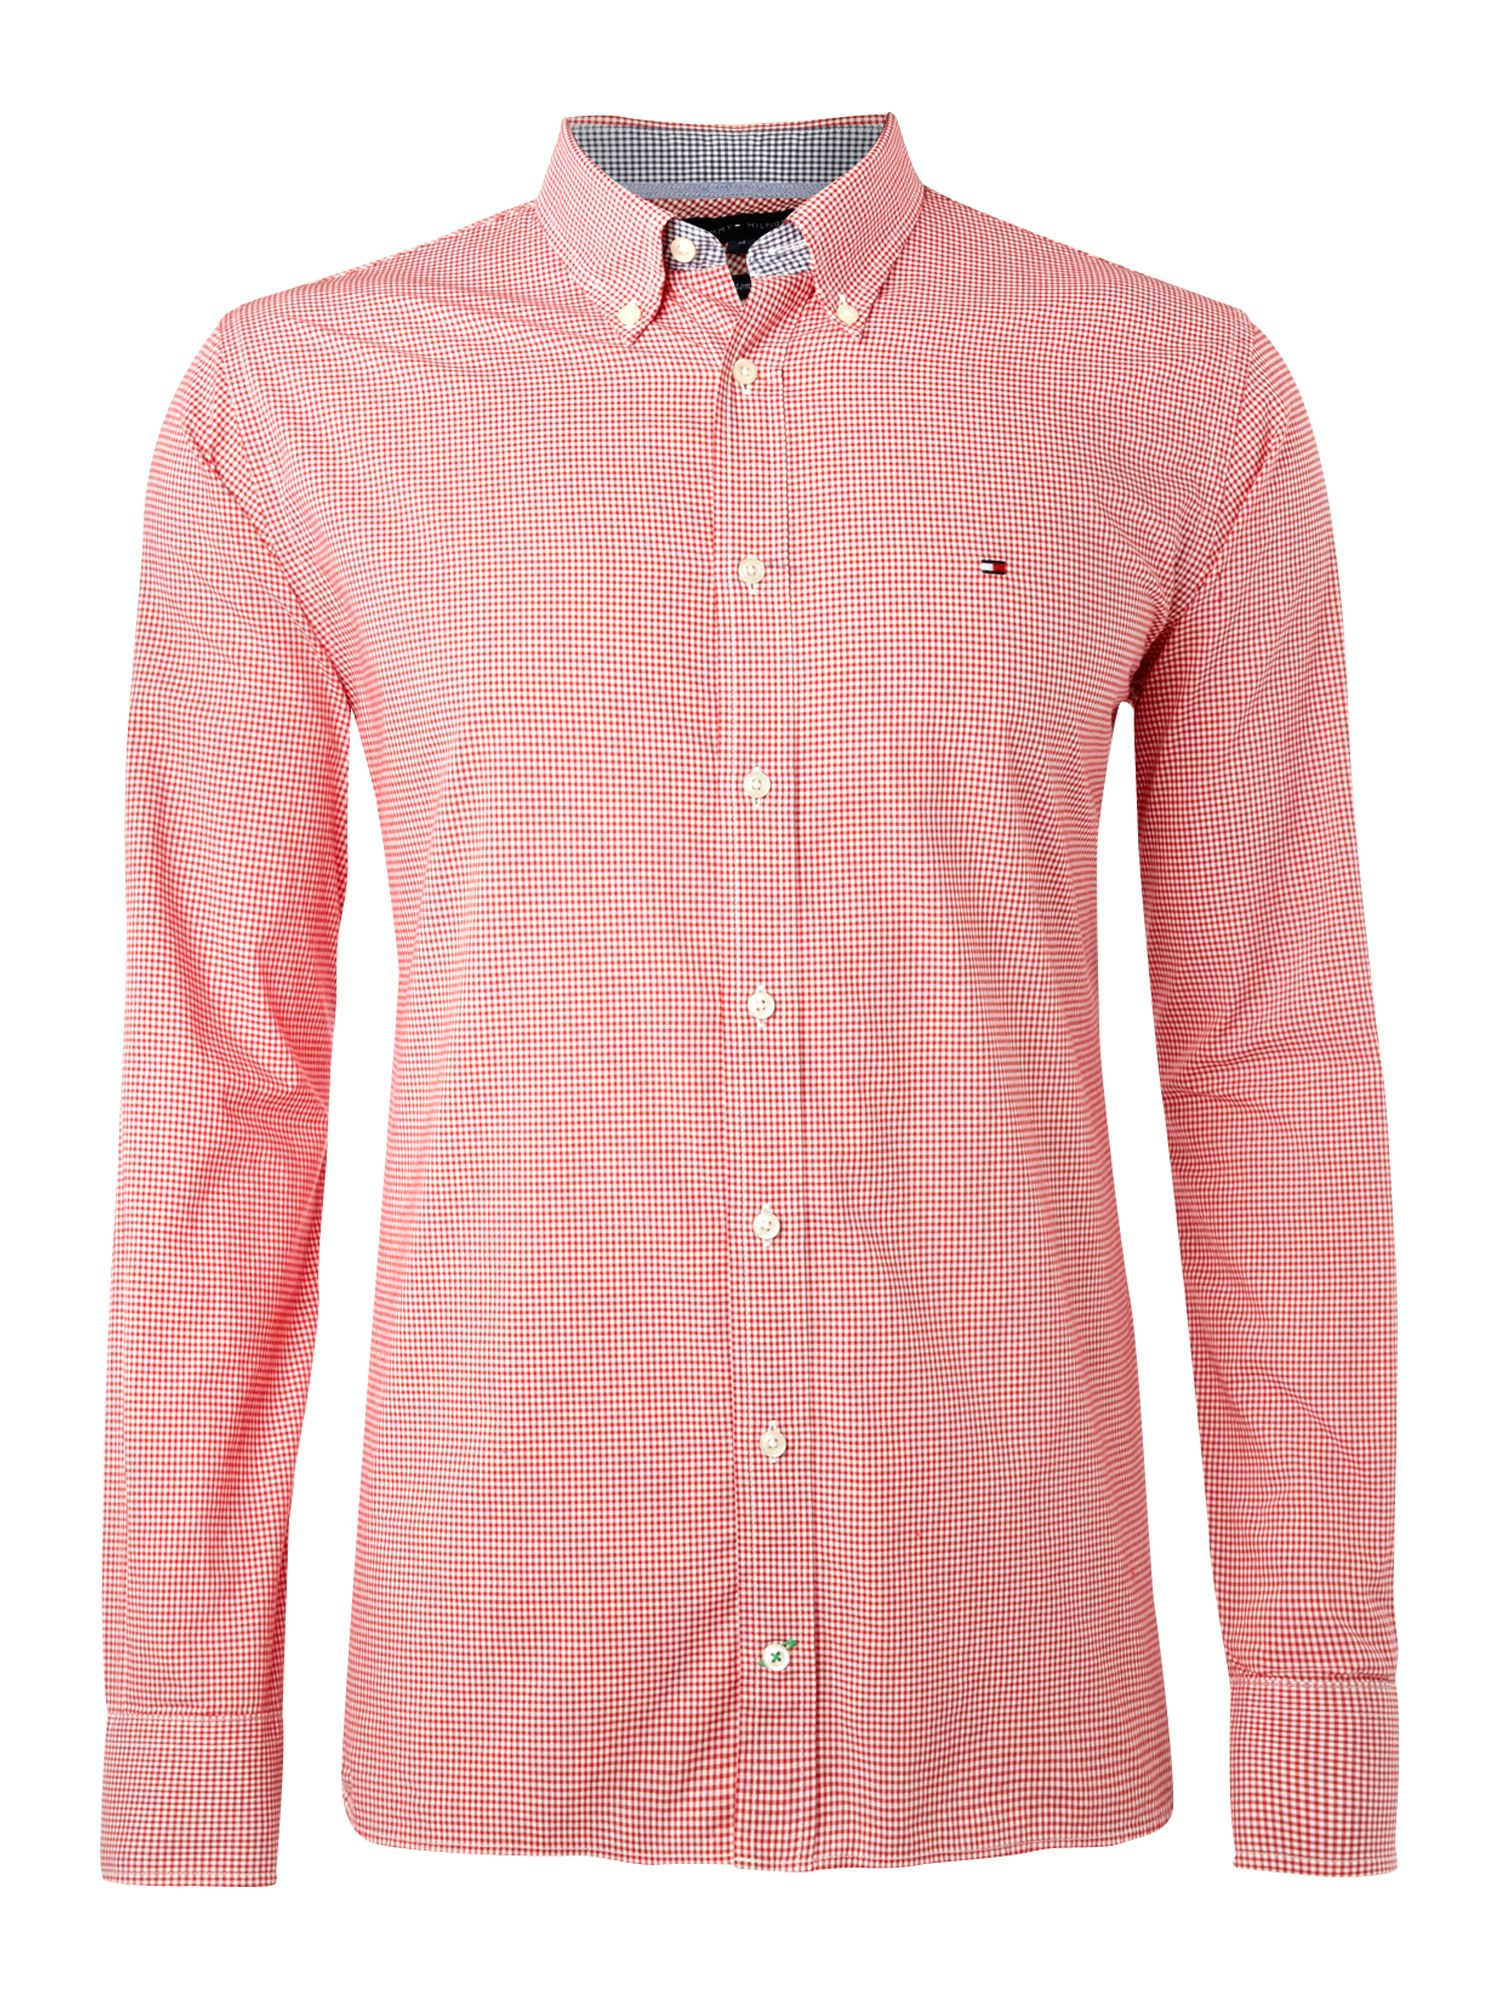 Tommy Hilfiger Check Custom Fit Shirt In Pink For Men Lyst